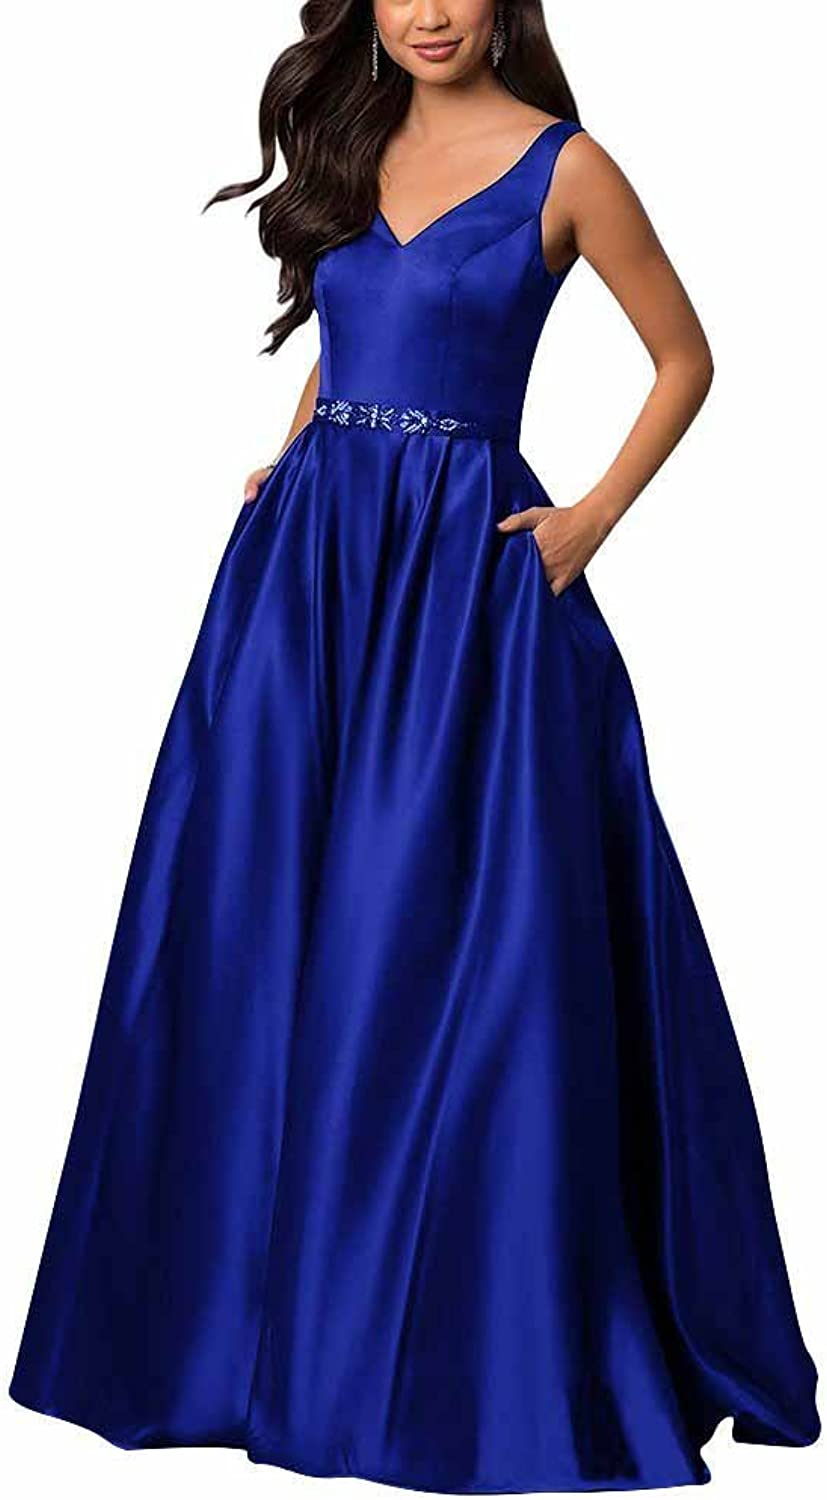 Yinyyinhs Women's V Neck Prom Dresses A Line Long Beaded Evening Formal Gowns with Pockets